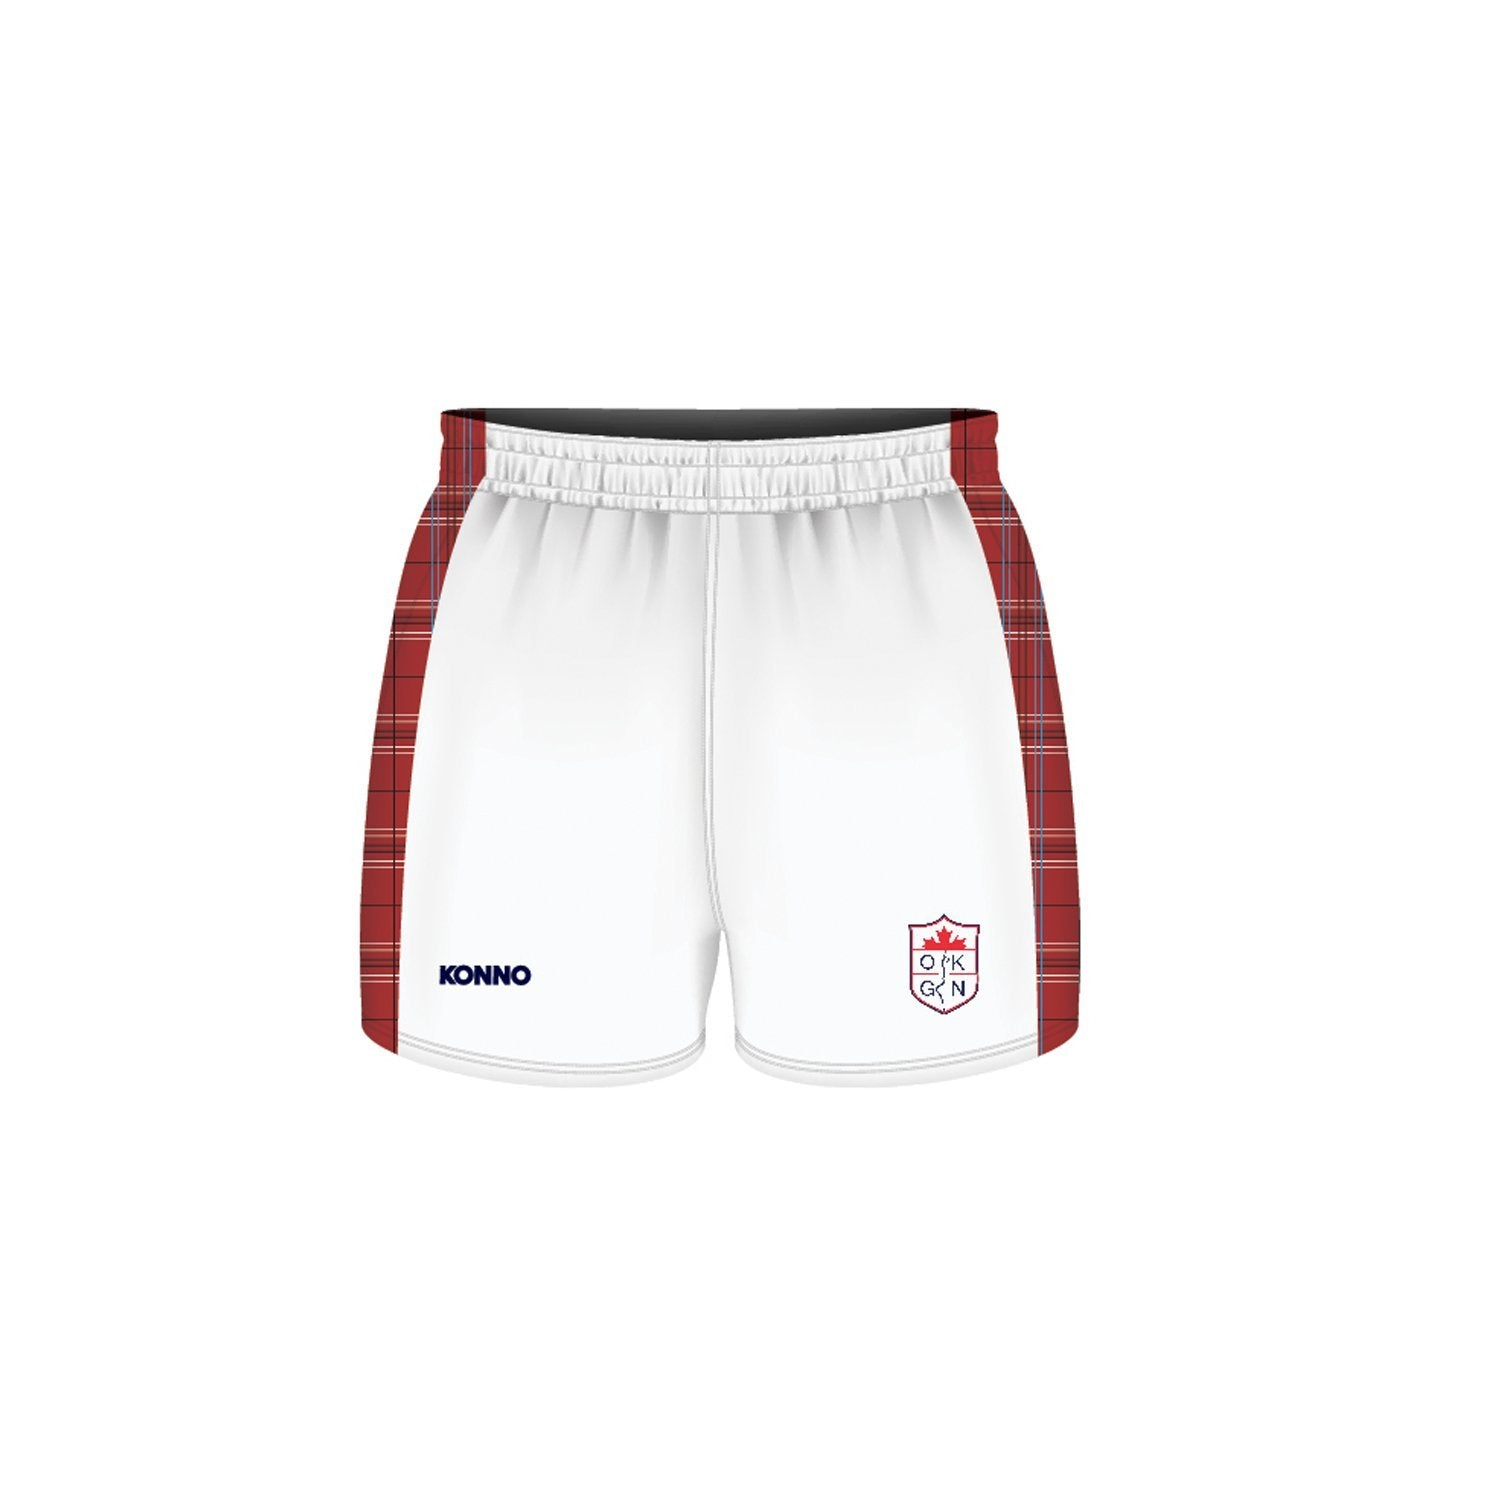 Okanagan Rugby Club Match Shorts - www.therugbyshop.com